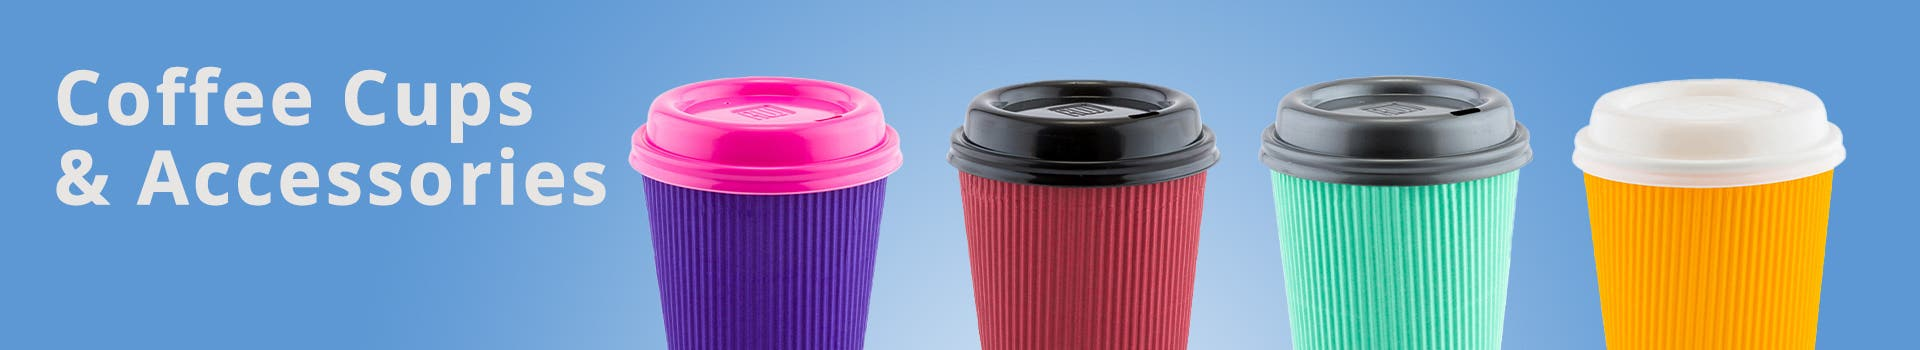 Coffee Cups & Accessories